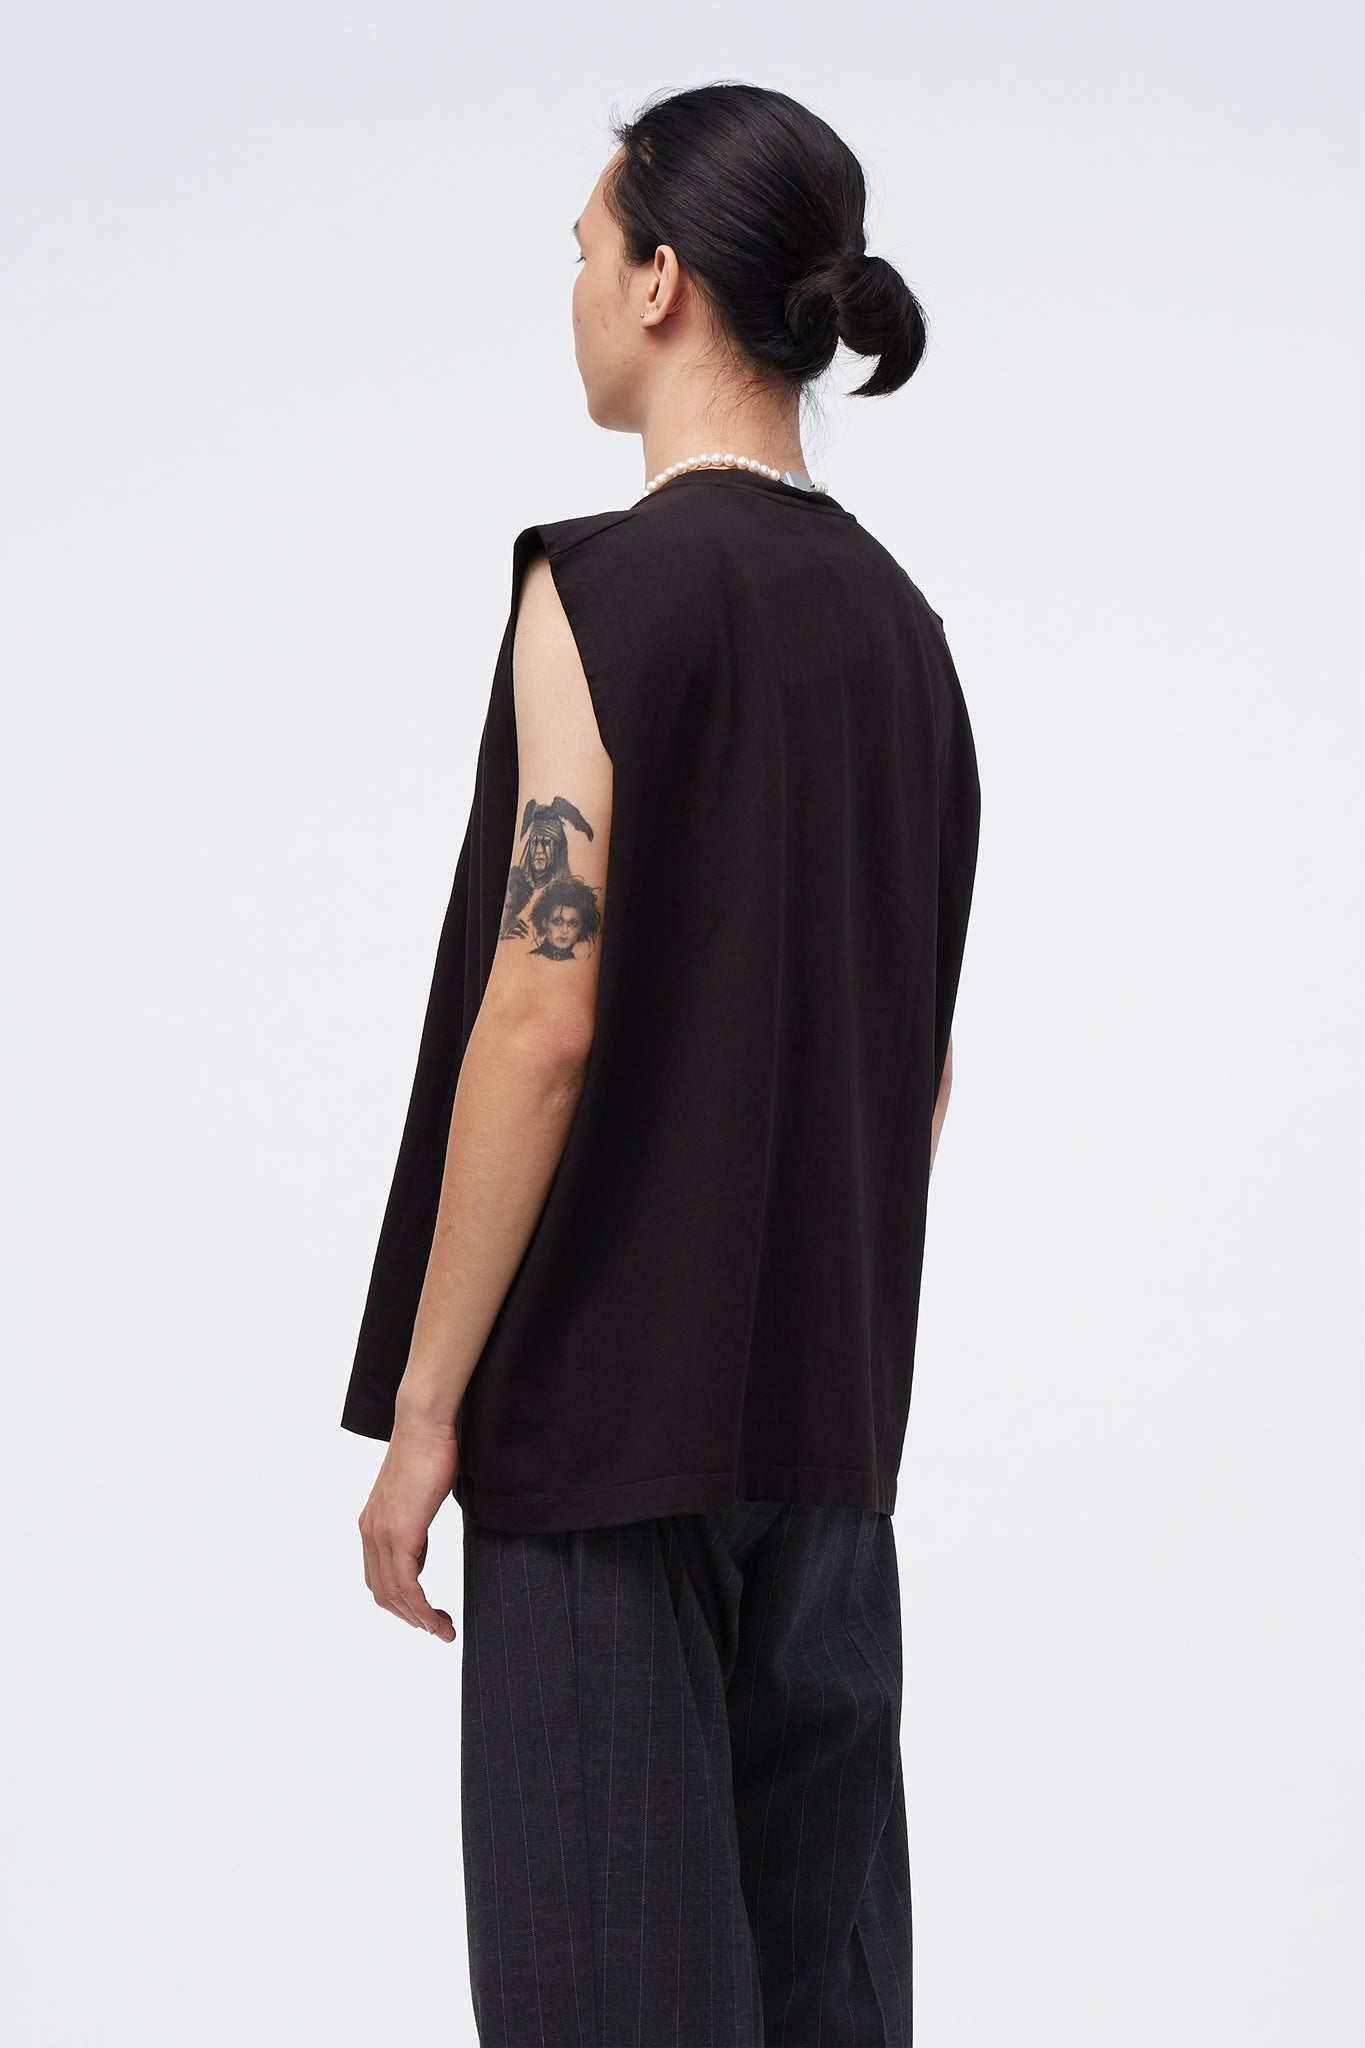 Box Sleeveless Last Meal Embroidery Black